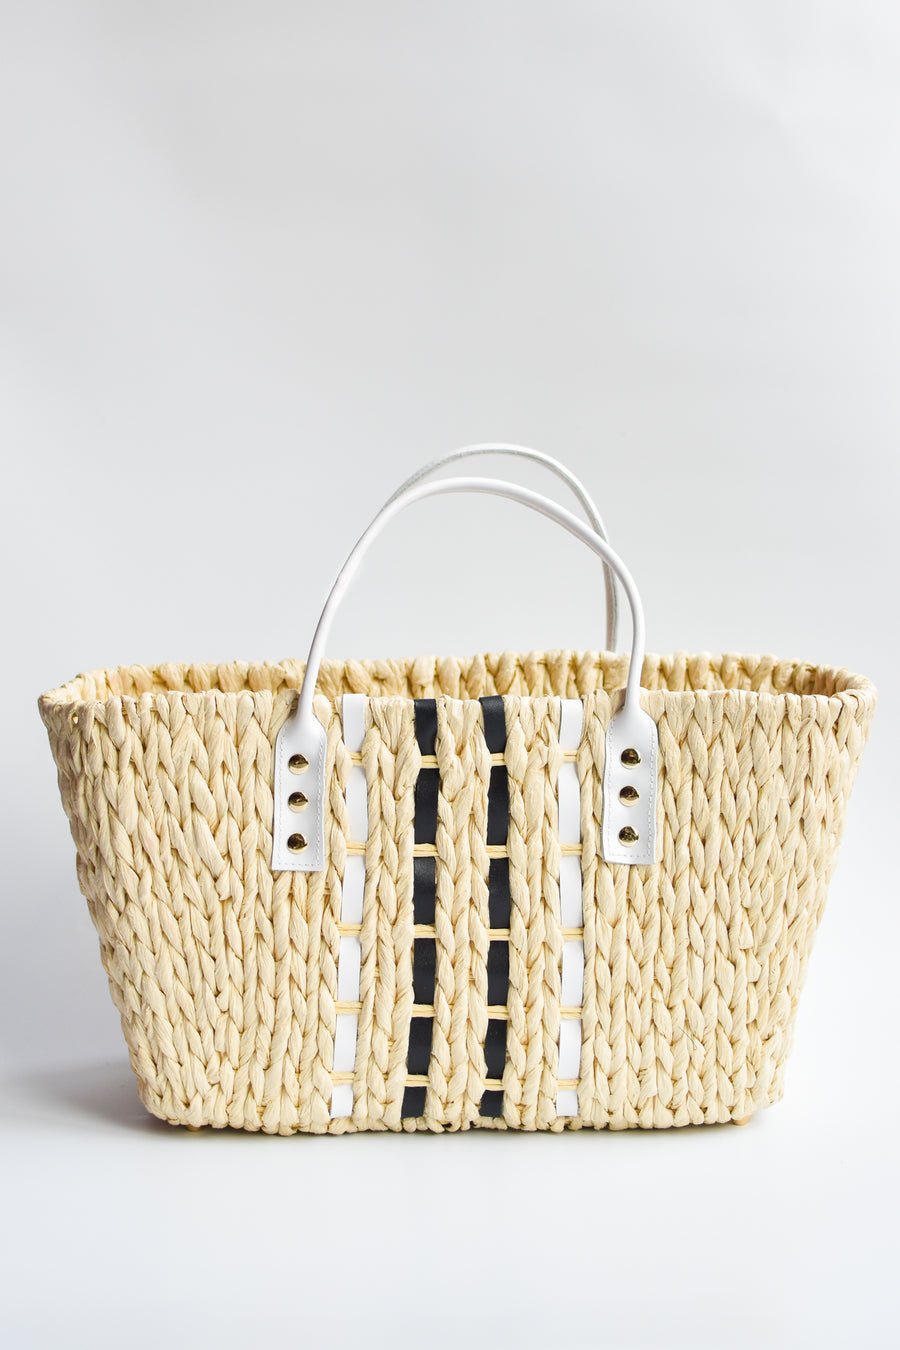 Small woven straw tote bag laced with black and white leather.